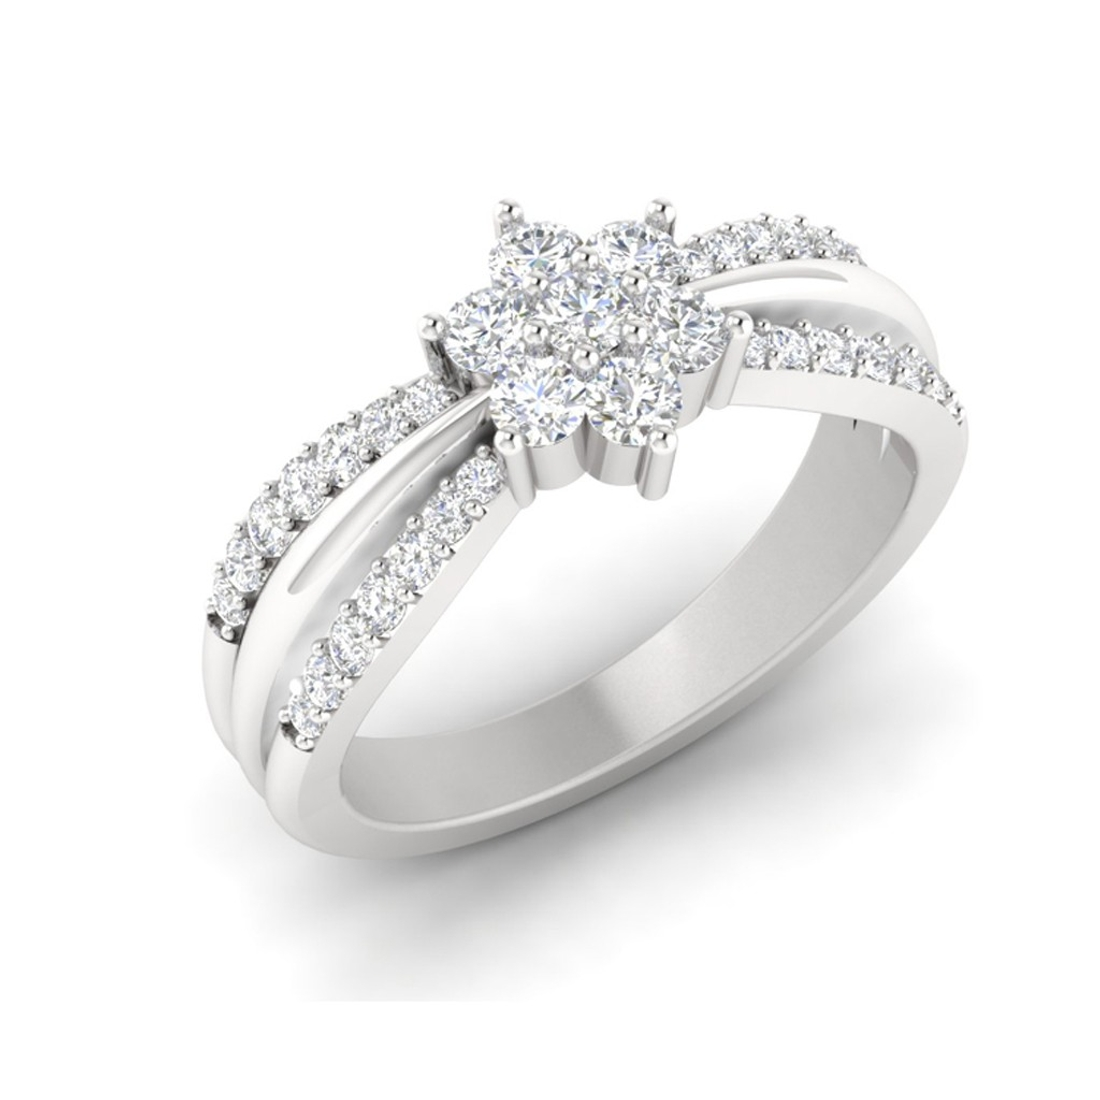 Sarvada Jewels' The Danielle Ring